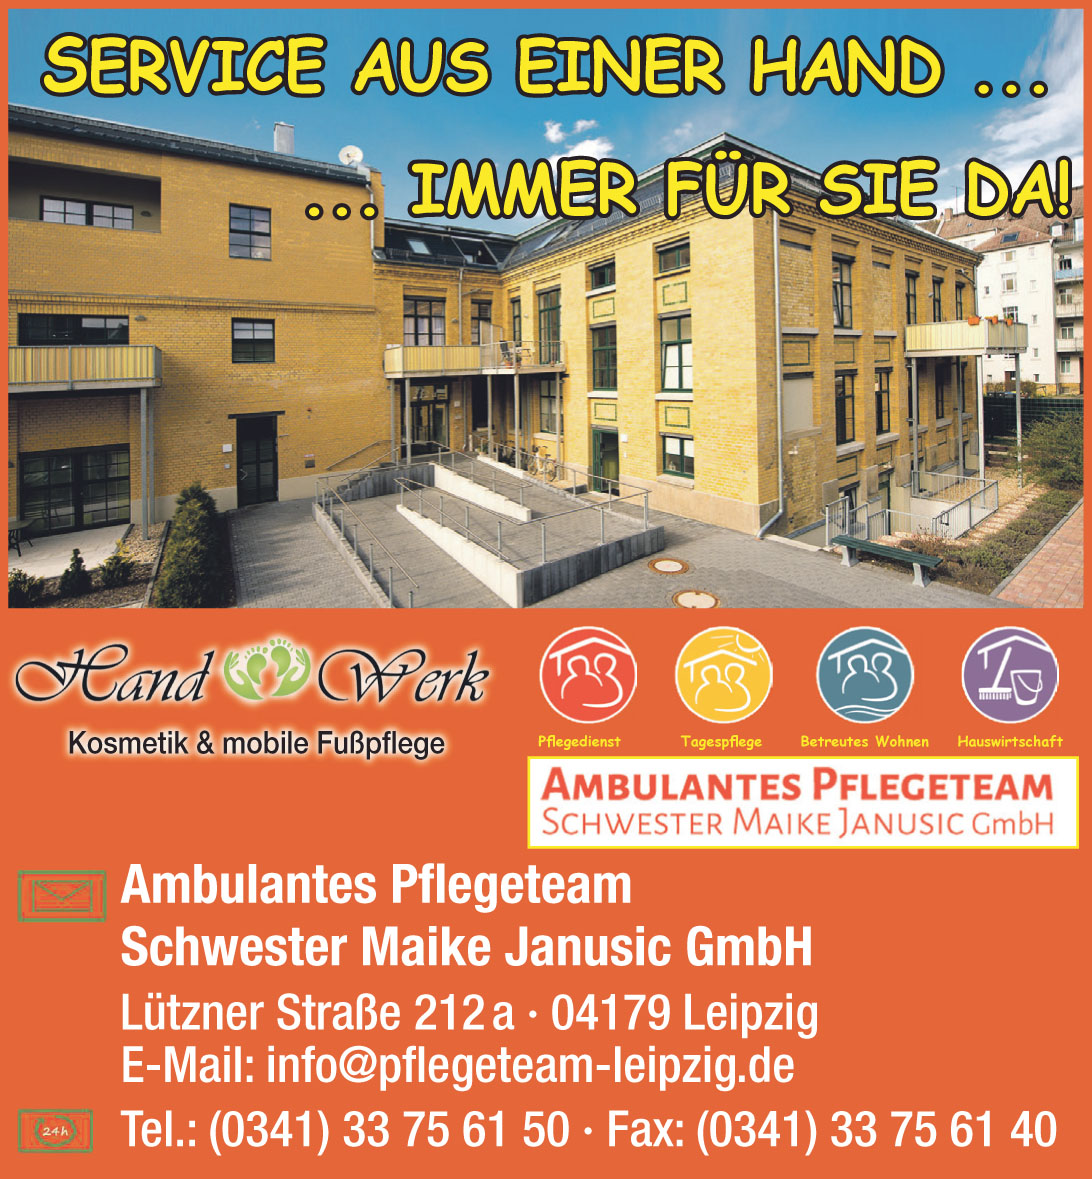 Ambulantes Pflegeteam Schwester Maike Janusic GmbH